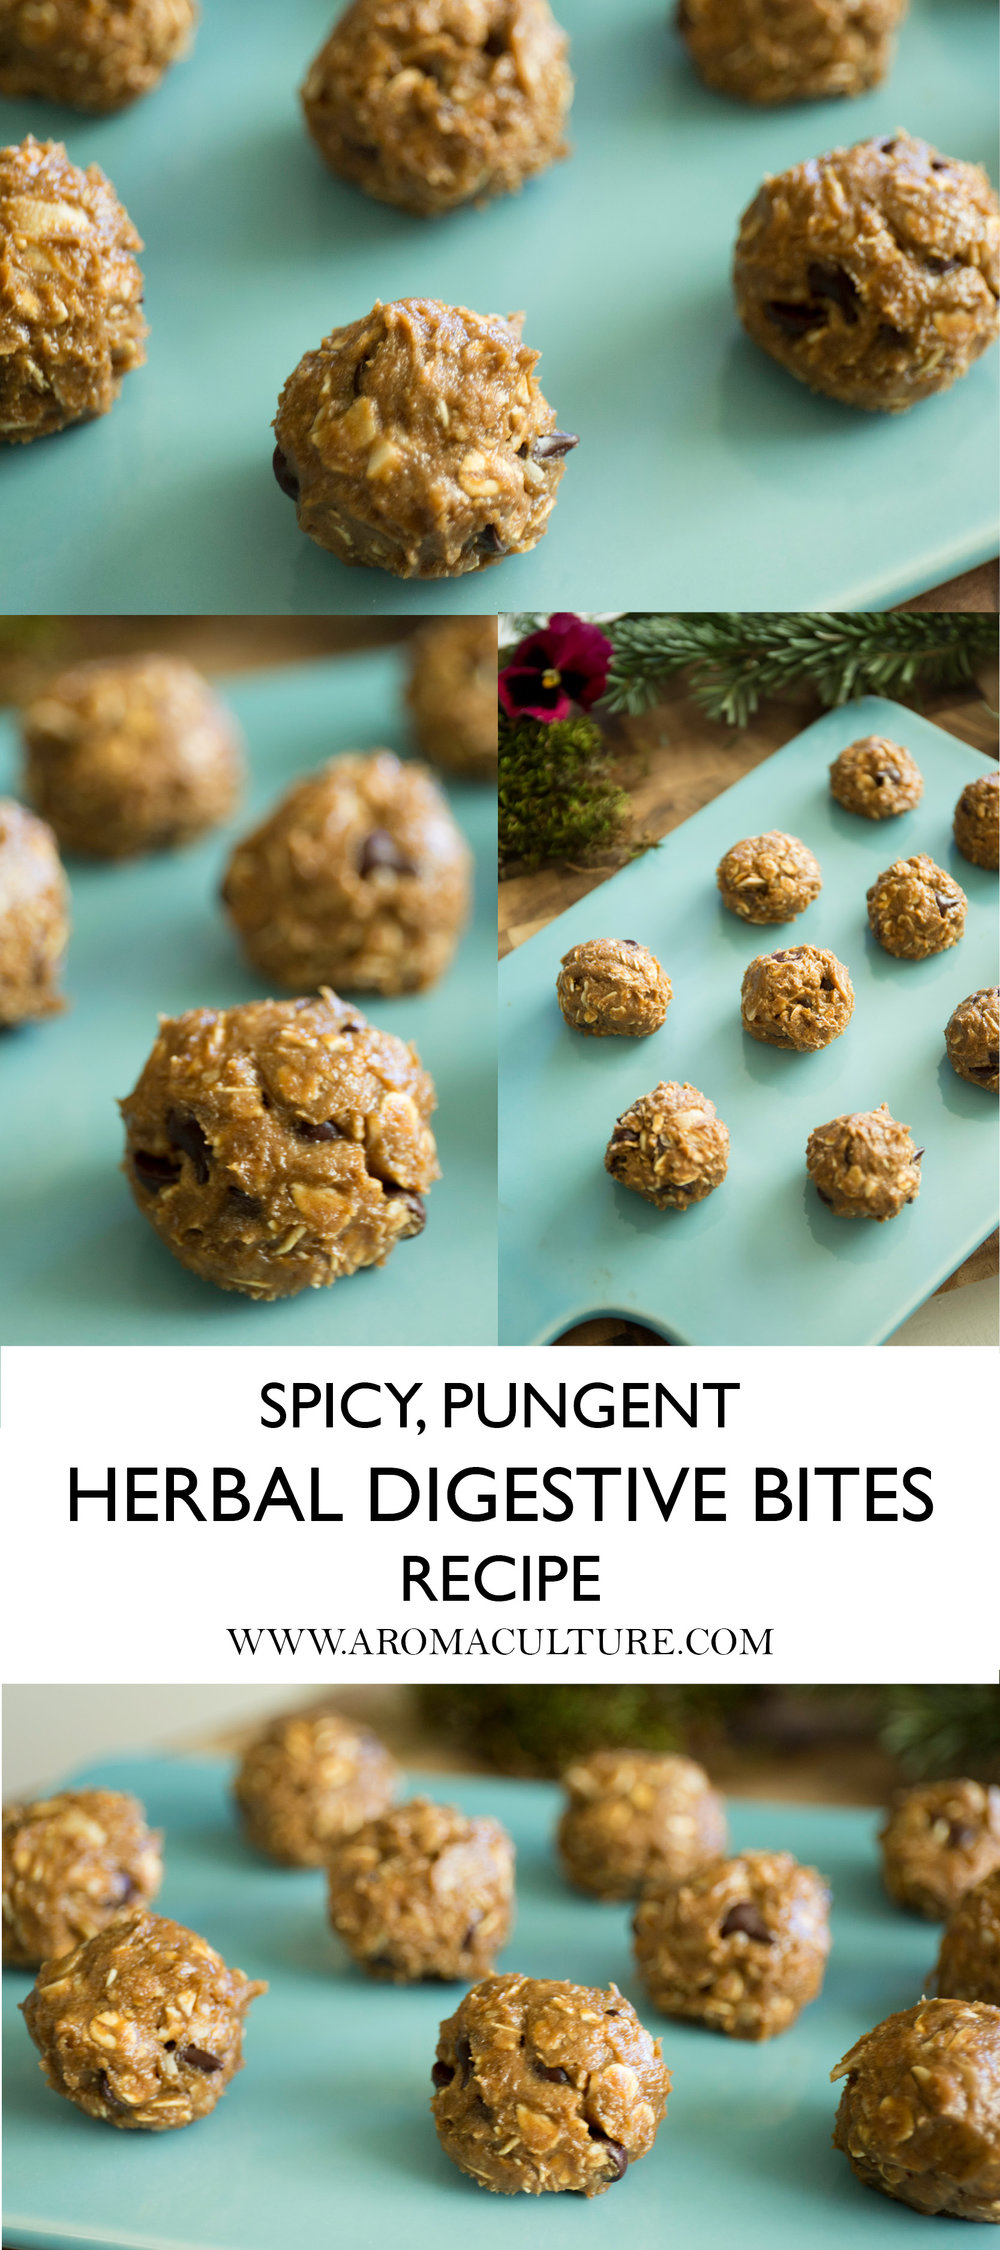 HOW TO MAKE HERBAL DIGESTIVE BITES.jpg